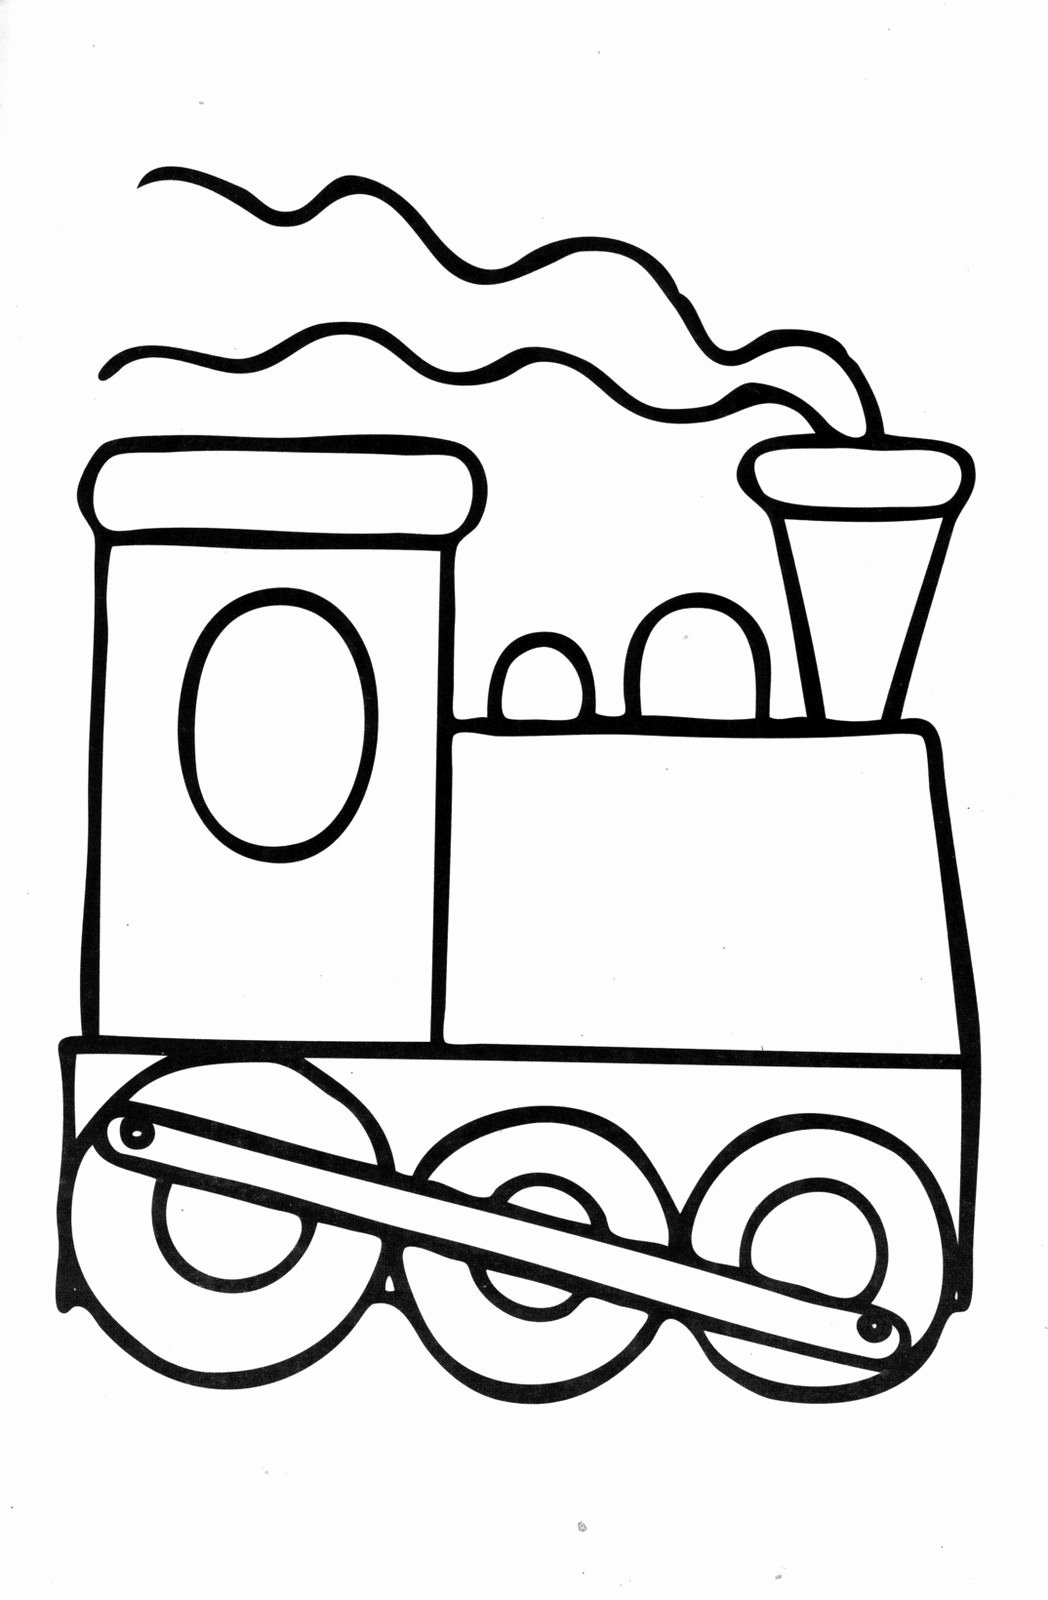 Simple Coloring Worksheets for Preschoolers Kids Simple Coloring Pages for Kindergarten Free to Print